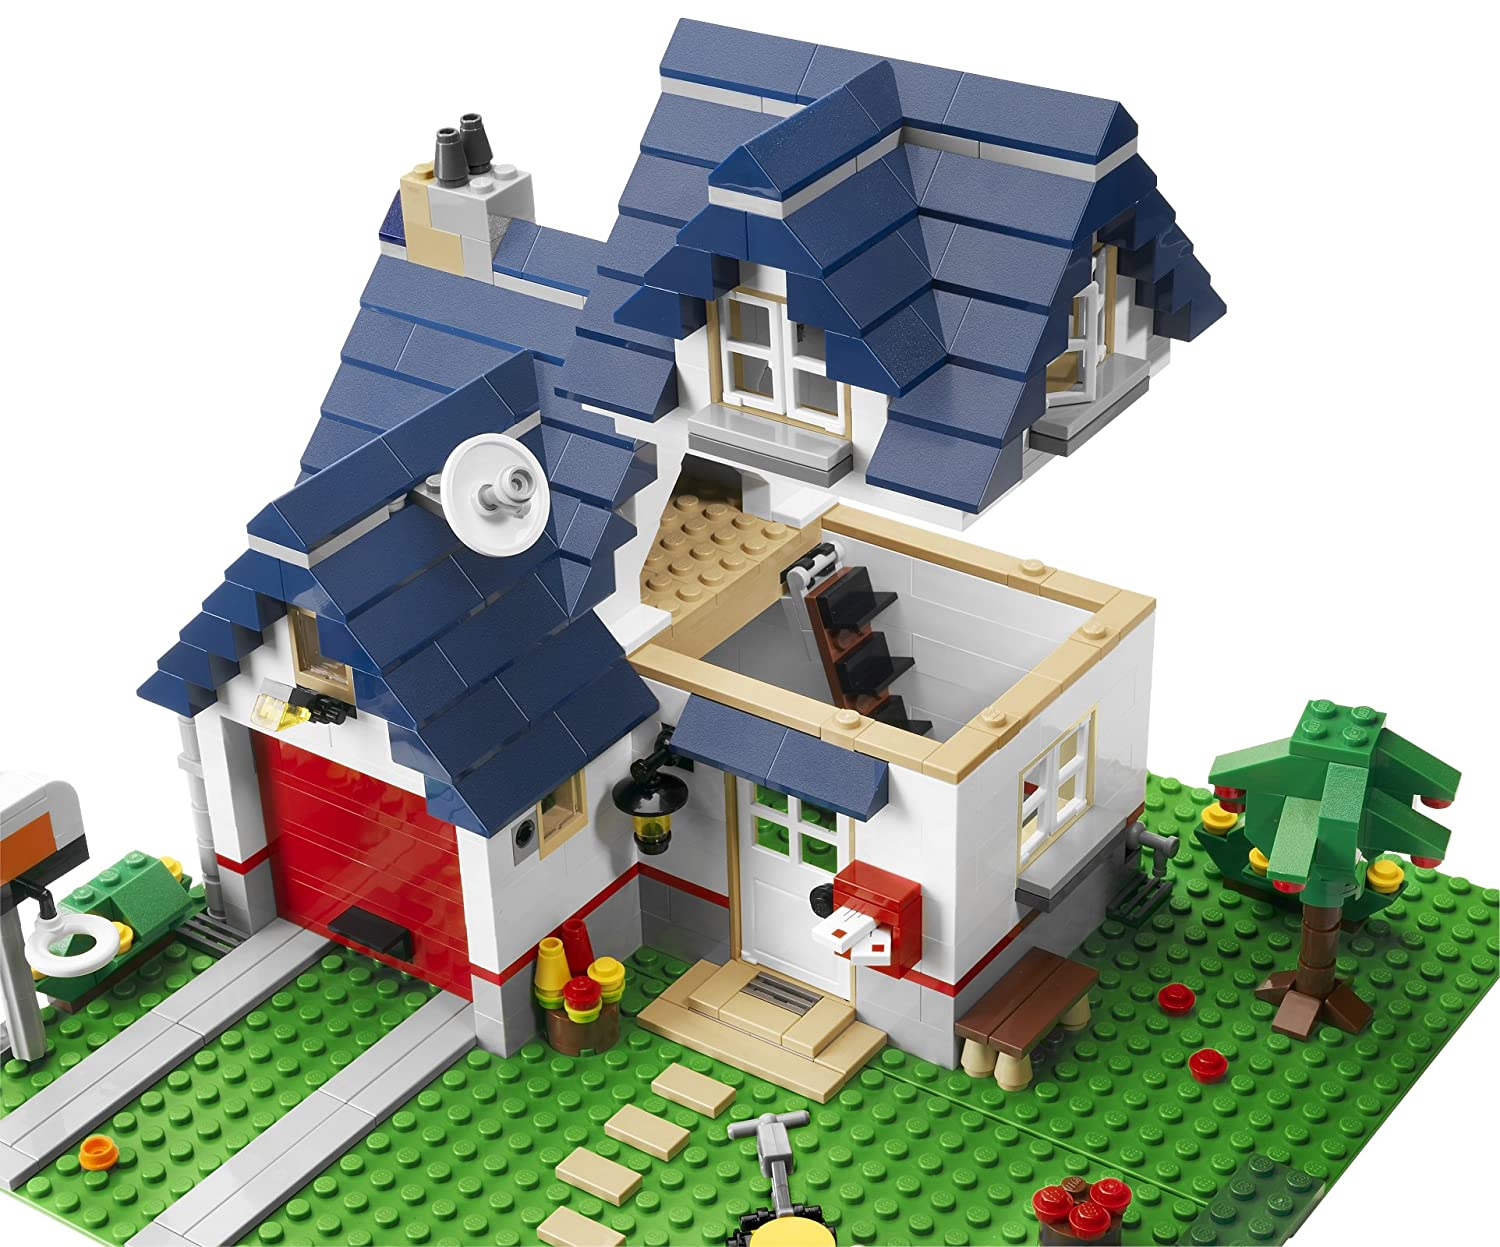 Lego home designer set